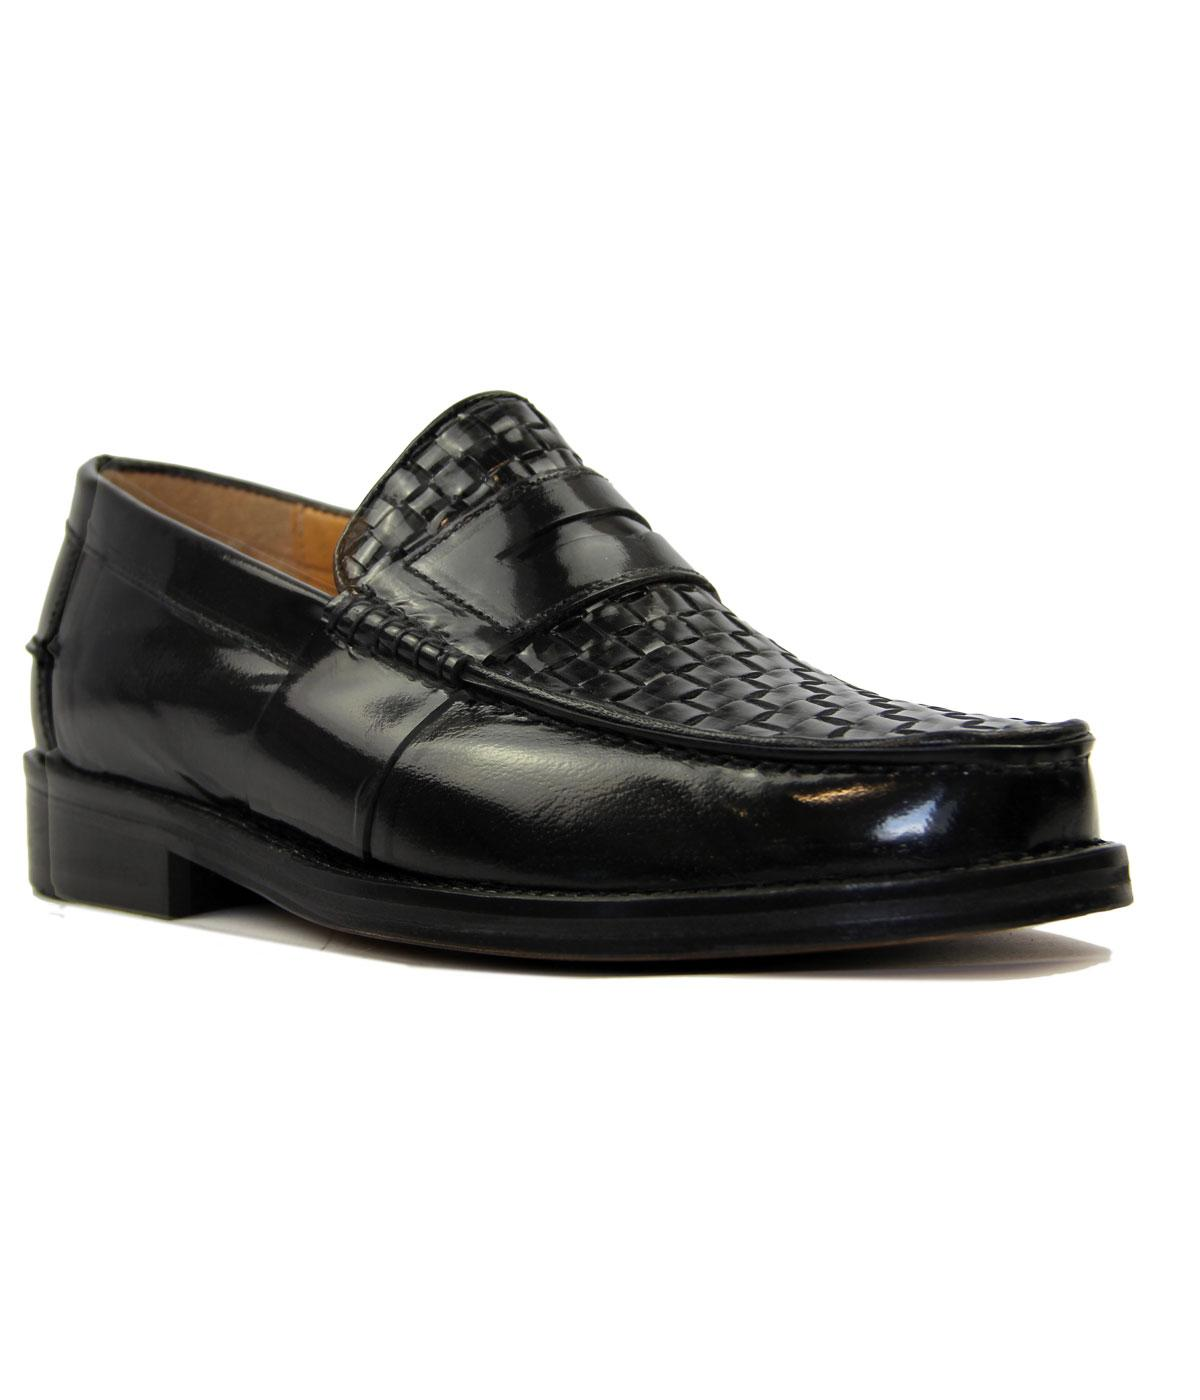 Brummell Weave DELICIOUS JUNCTION Mod Loafers (B)